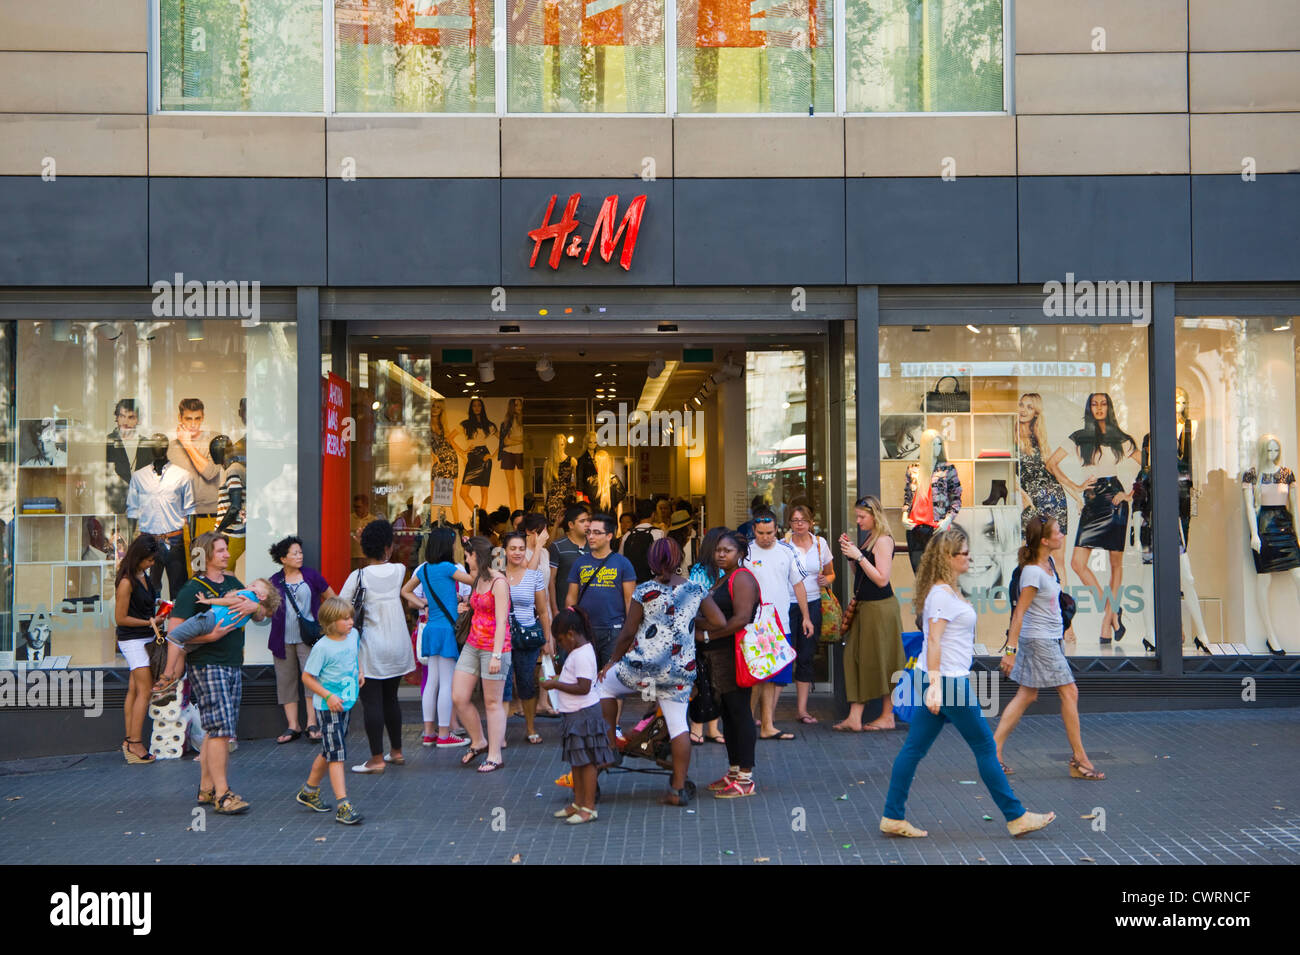 Barcelona people shopping. Exterior of H&M store with people shopping in Barcelona, Catalonia, Spain, ES - Stock Image